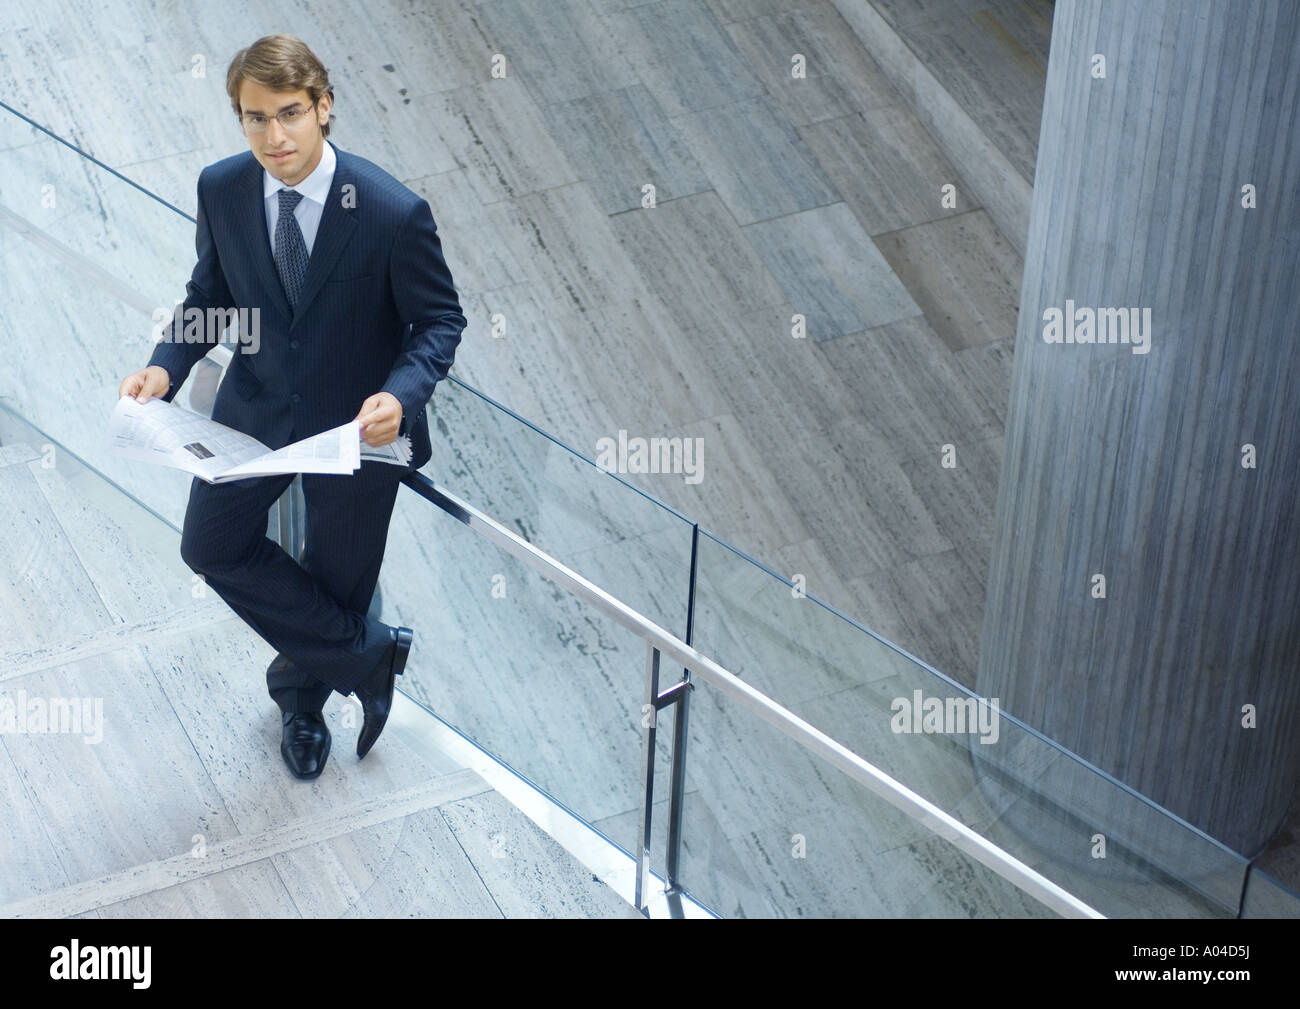 Businessman reading newspaper, high angle view - Stock Image